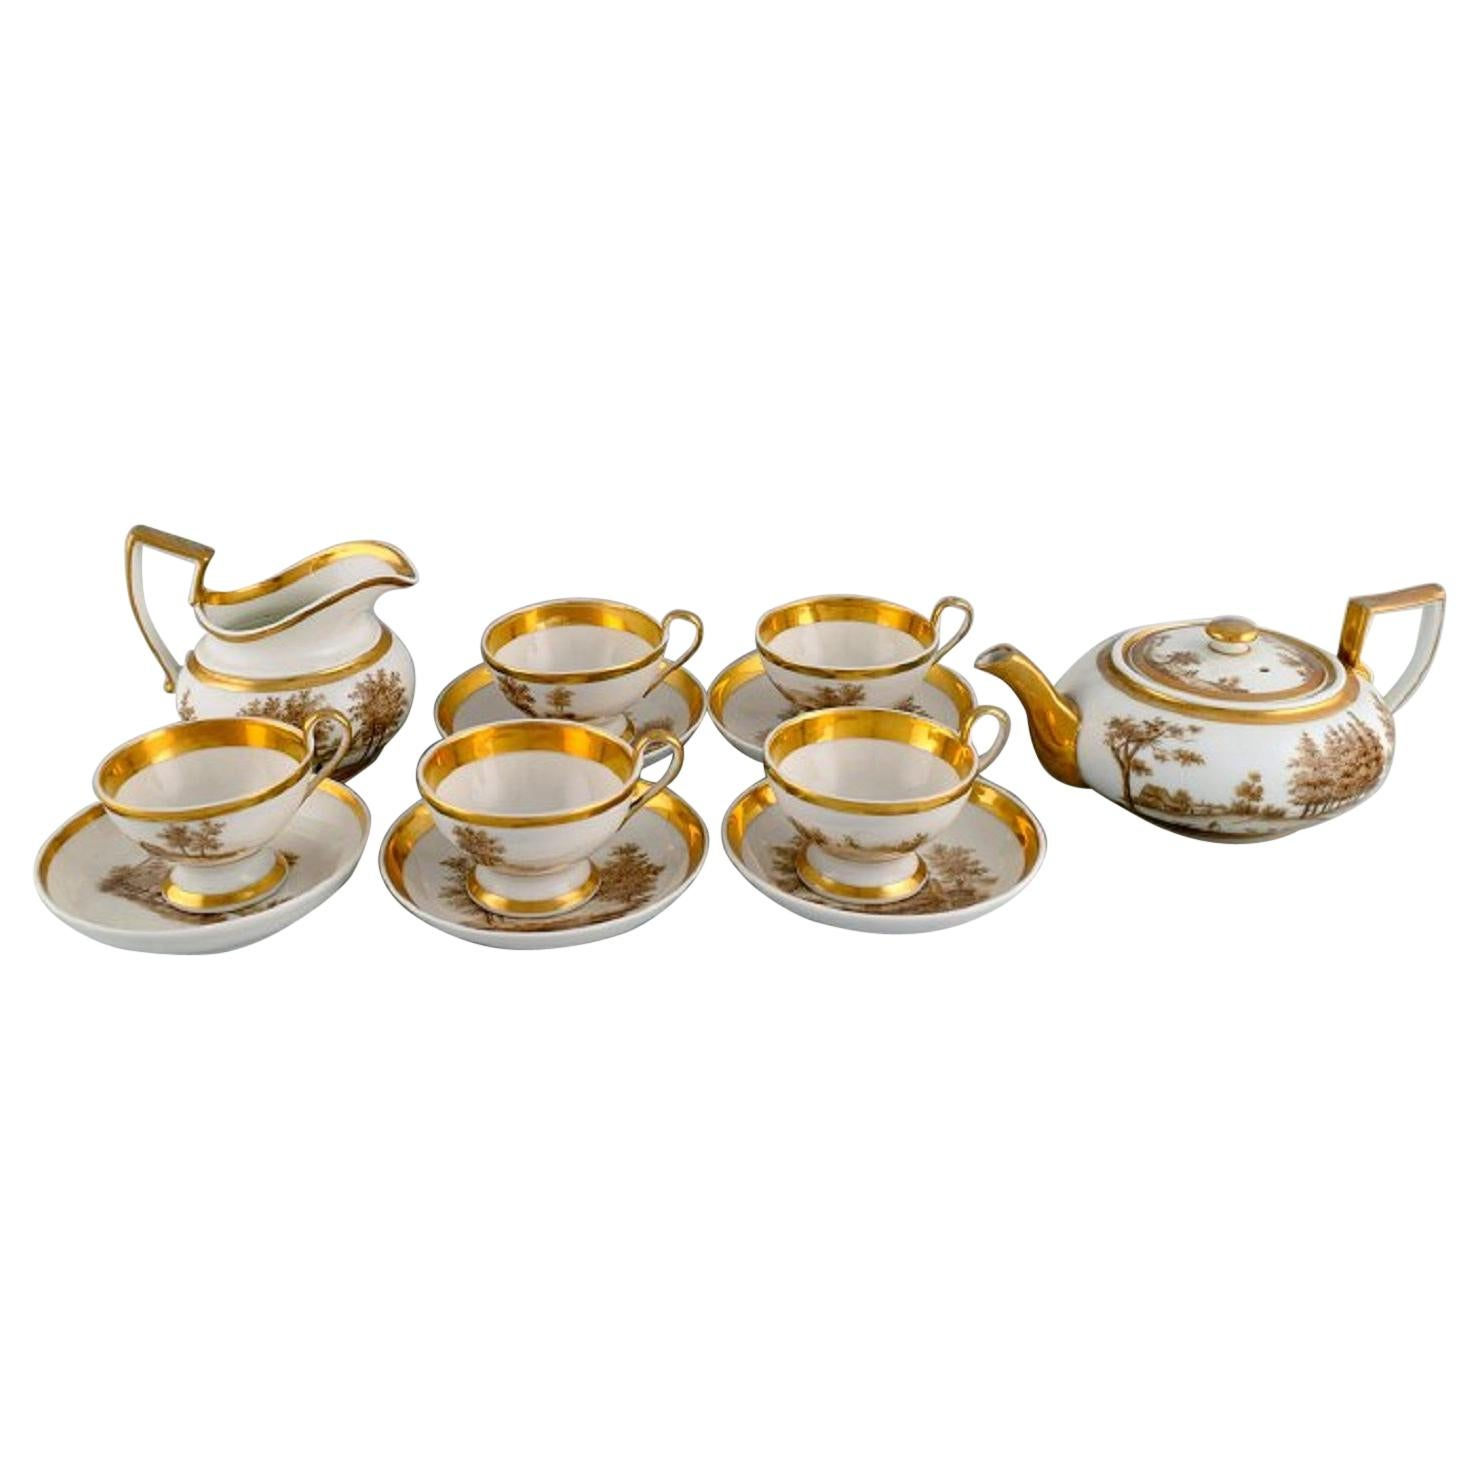 Antique Empire tea service for five people in porcelain. Dated 1831